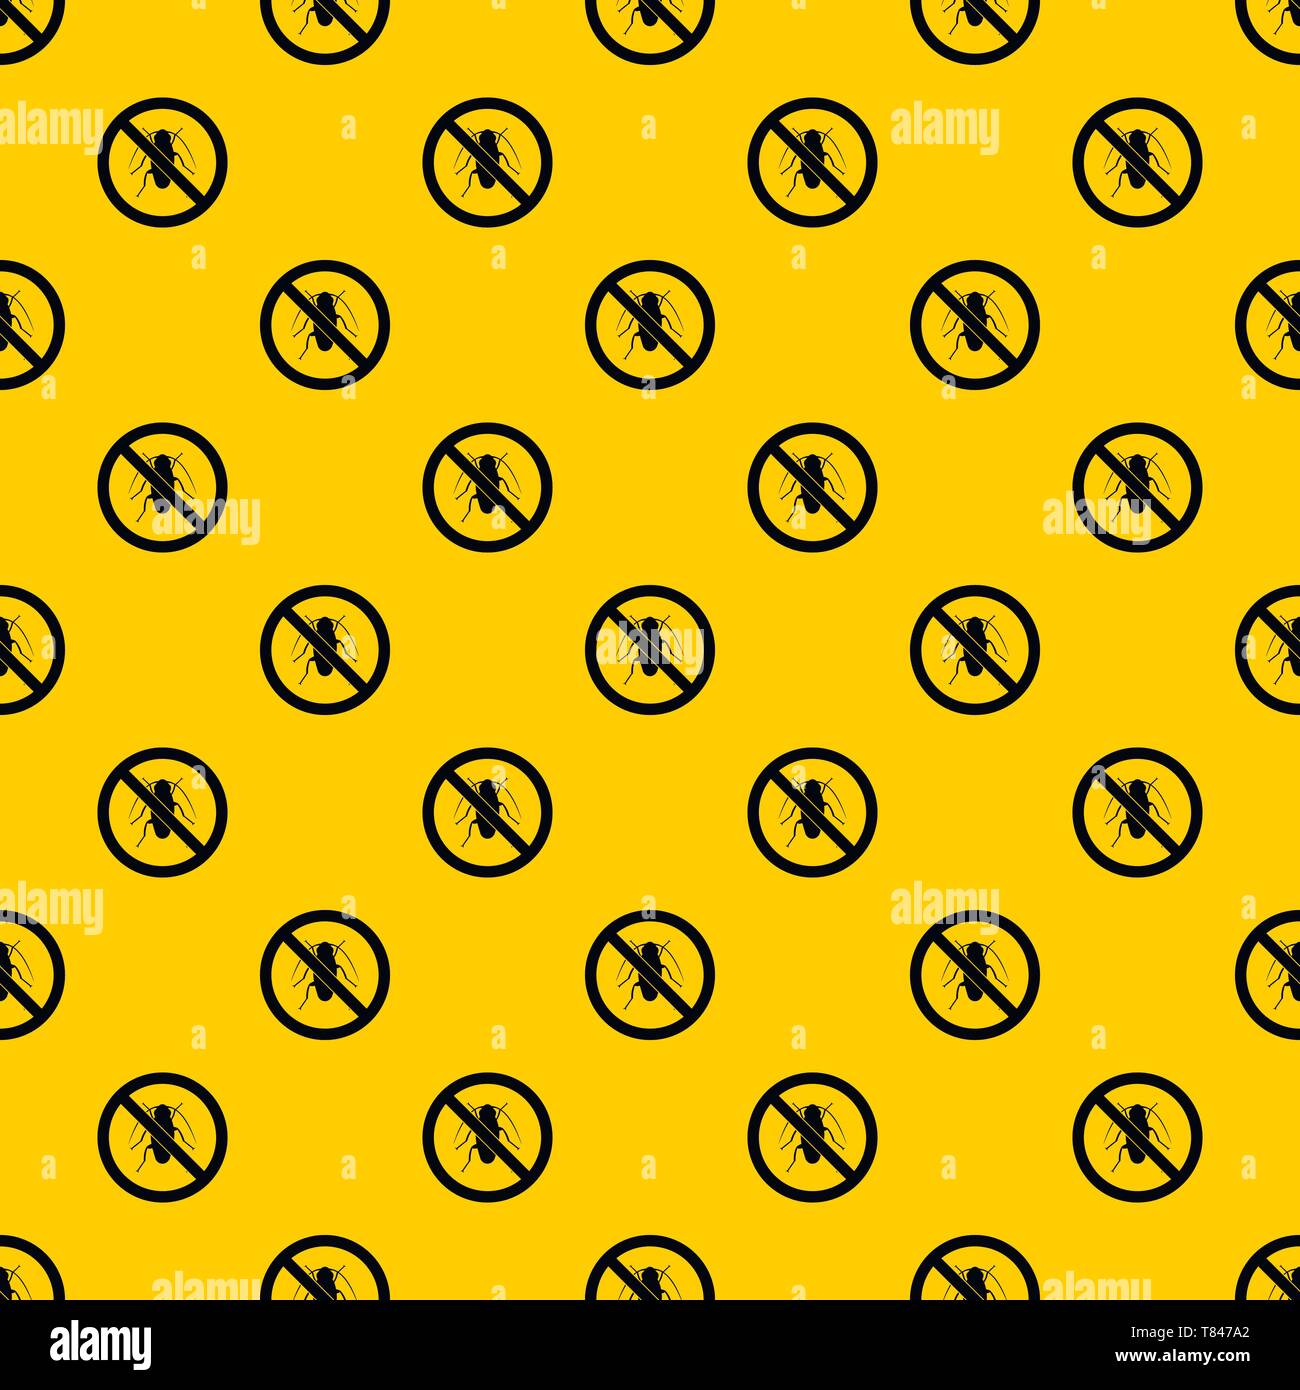 No cockroach sign pattern vector - Stock Image